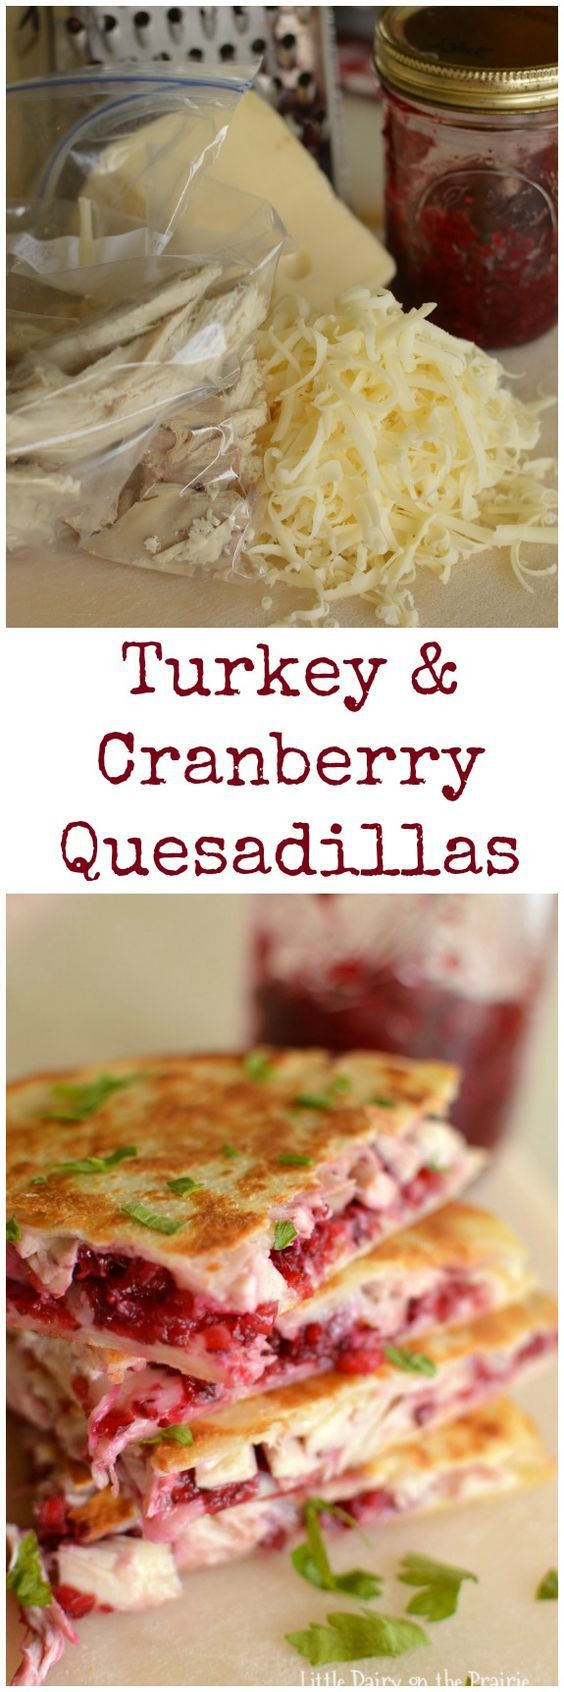 Turkey and Cranberry Quesadillas are quick and easy way to use up leftover turkey. Trust me no complaints about leftovers on this one!